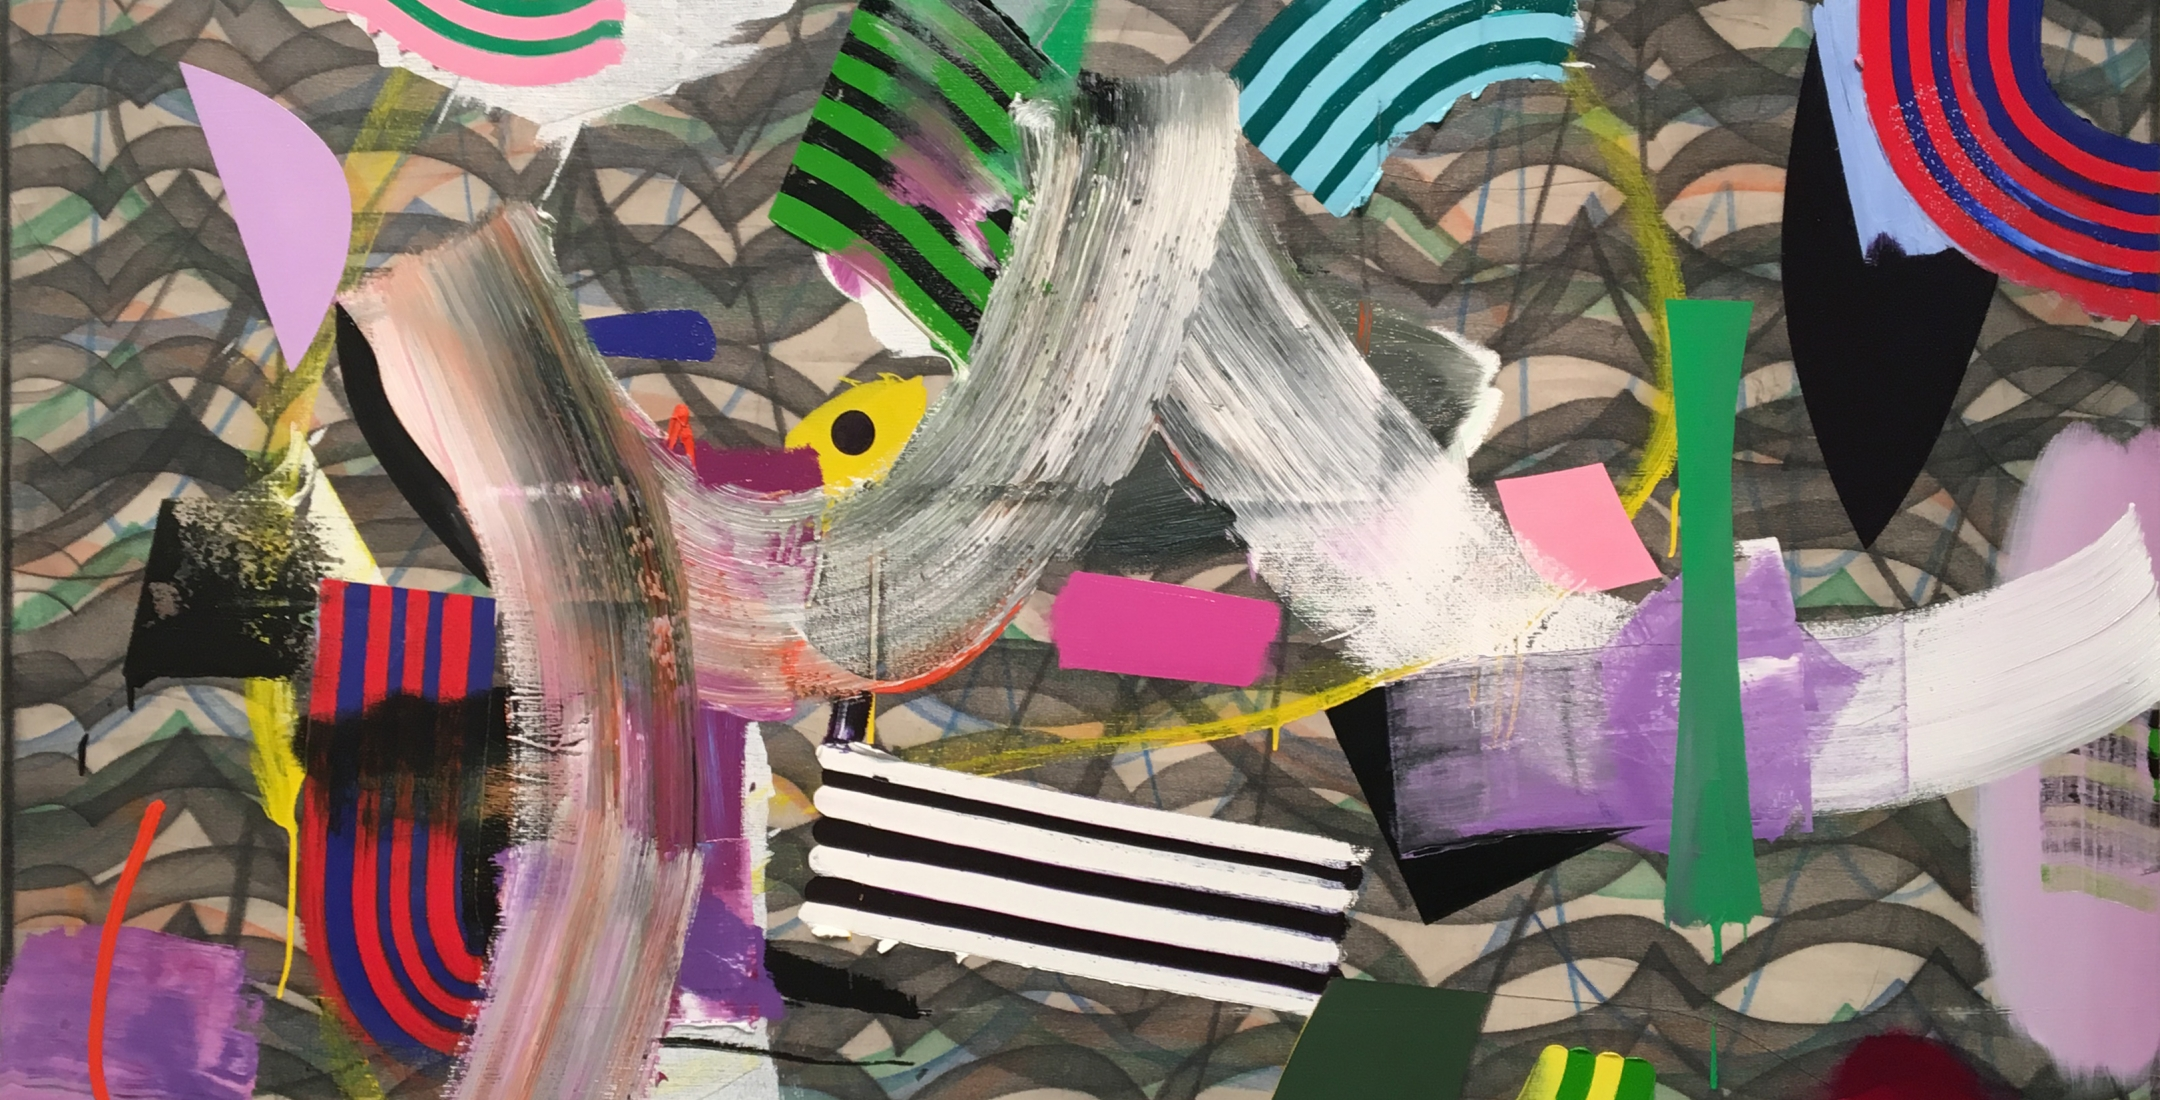 detail of abstract painting by Eric Sall titled Deluge 3 - suggestion of floating shapes in an ocean